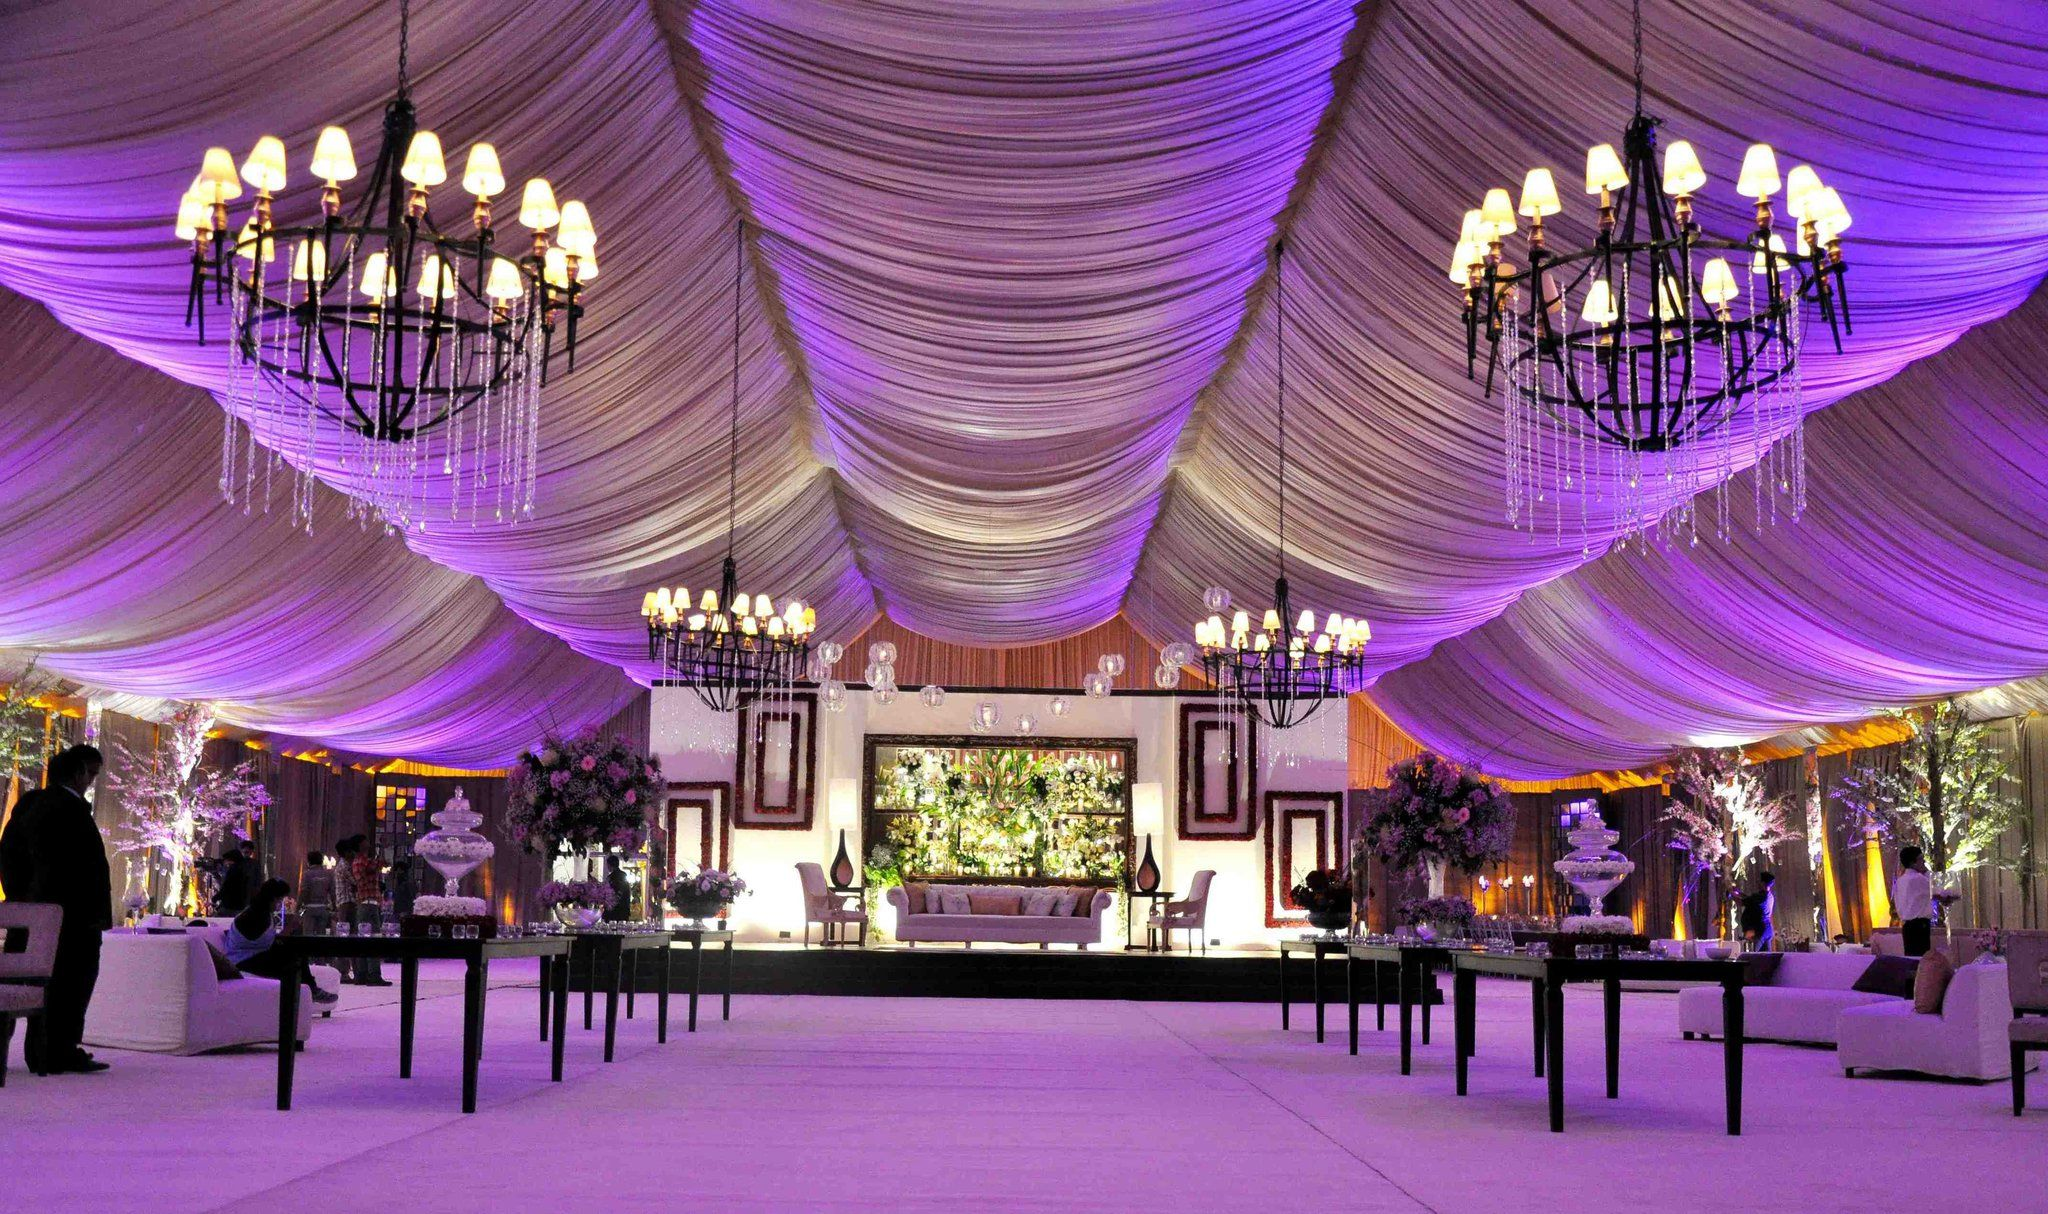 Wedding Reception Venues In Mishawaka A : The imperial banquet marquee clifton and dha karachi